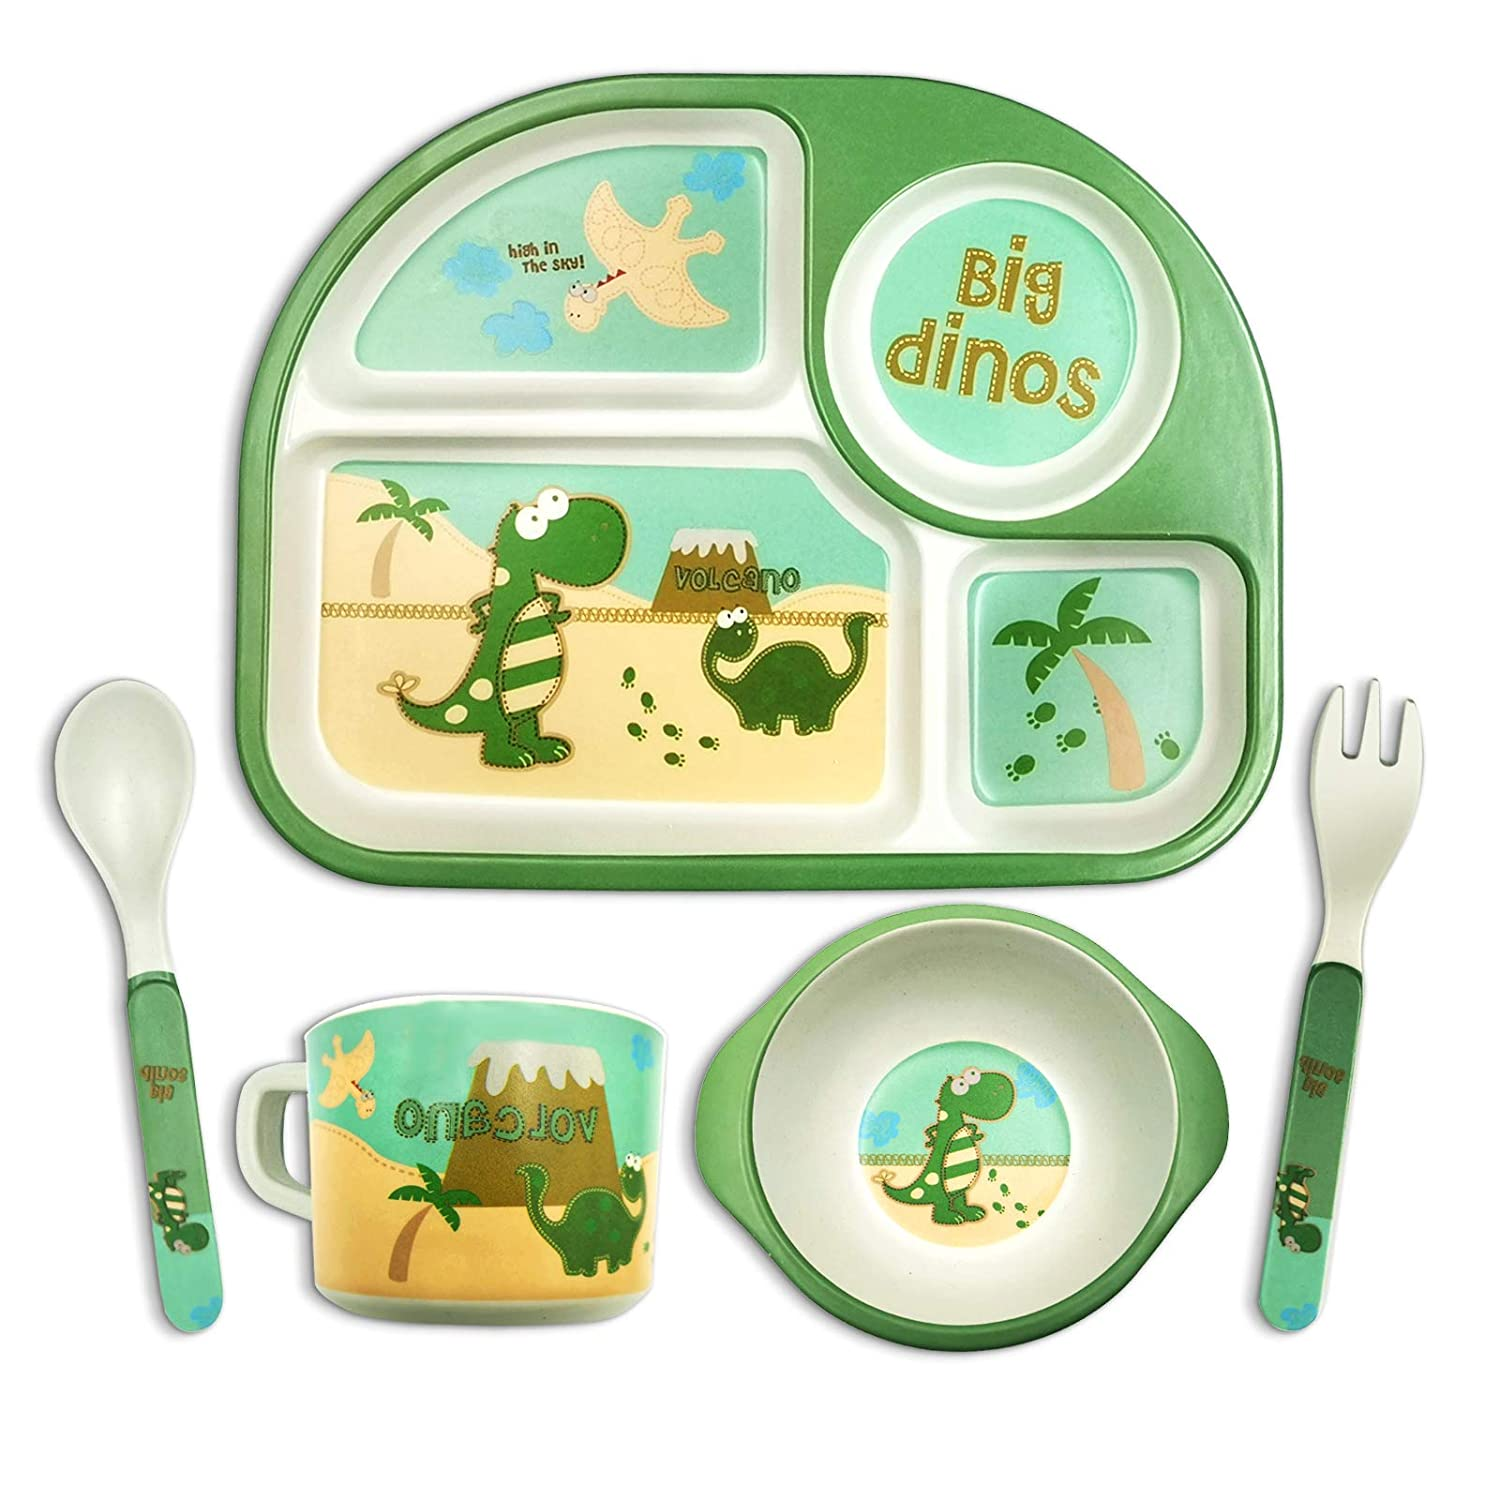 Toddler Dishes Dinnerware Sets - Dinosaur Kids Plates Bowl Sets Suction Plate for Weaning Babies Bamboo Toddler Dishes Baby Toddler Self-Feeding Plate